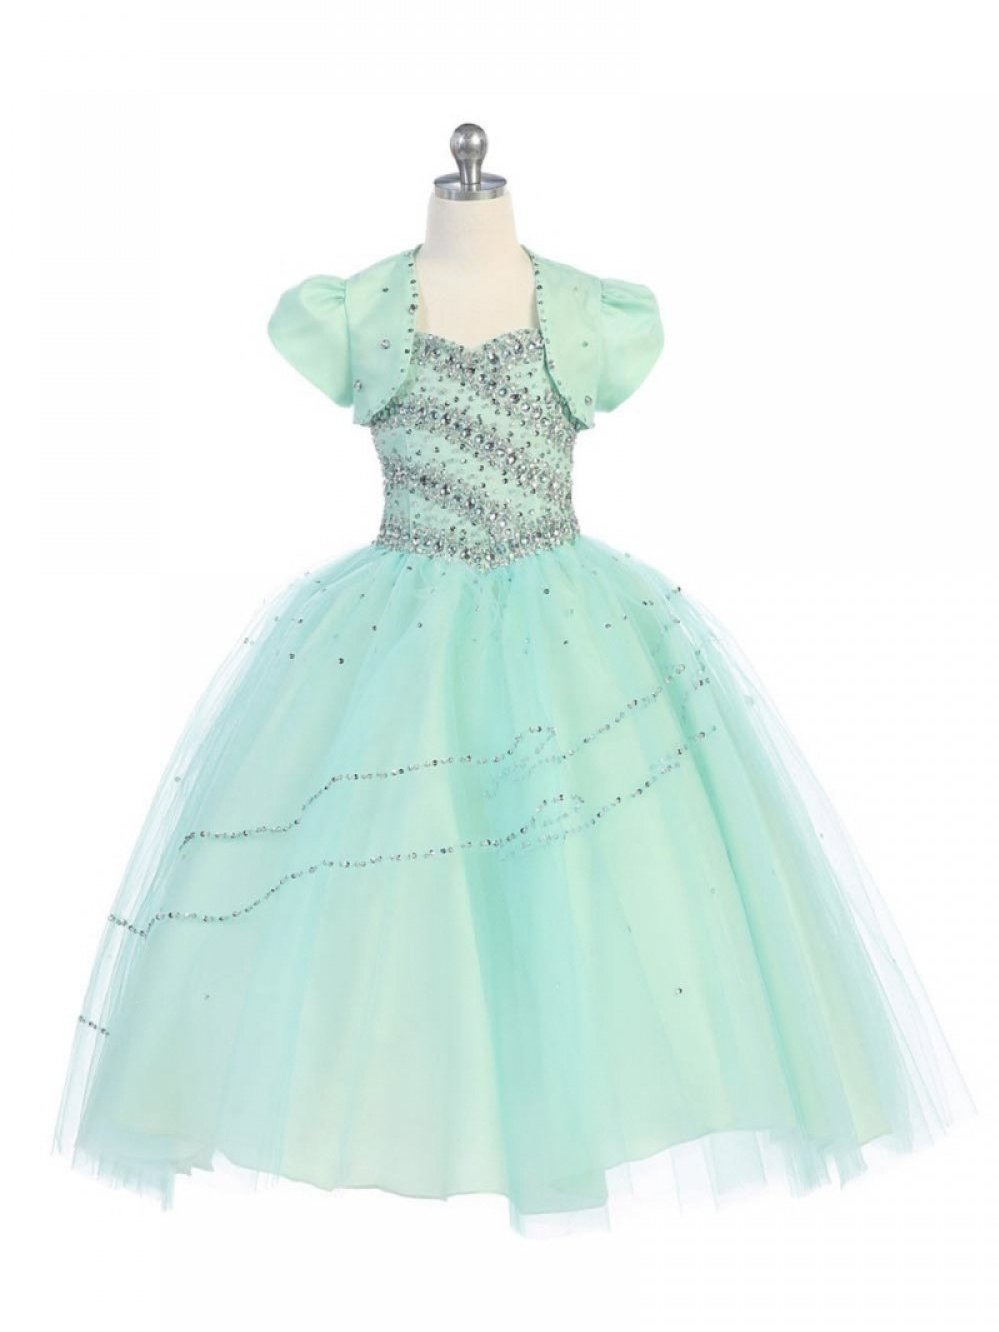 Spaghetti straps sweet heart crystal tulle lace up flower girl dress